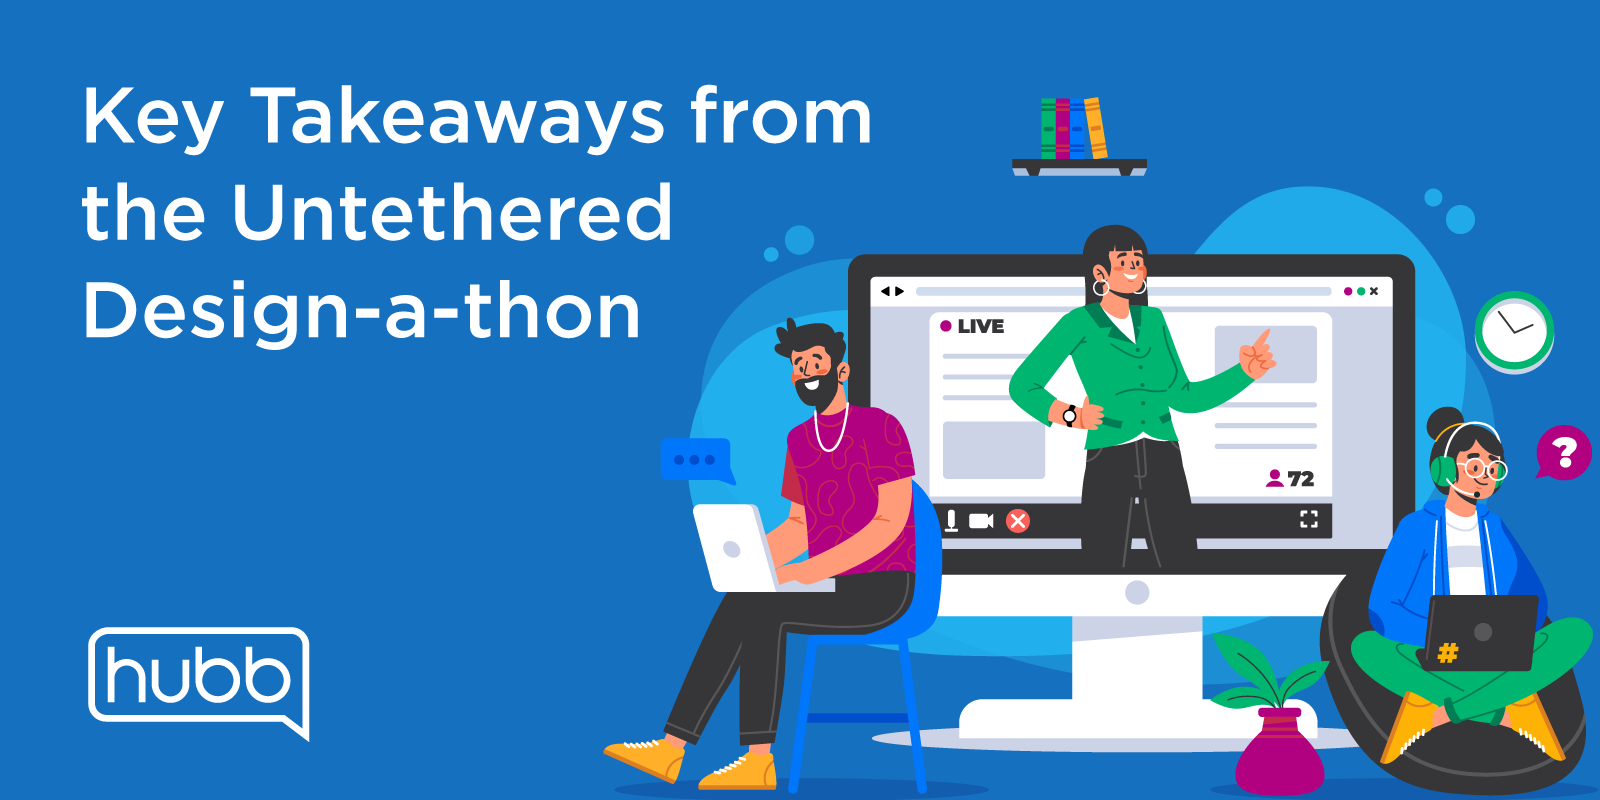 Our Key Takeaways from the Untethered Design-a-thon